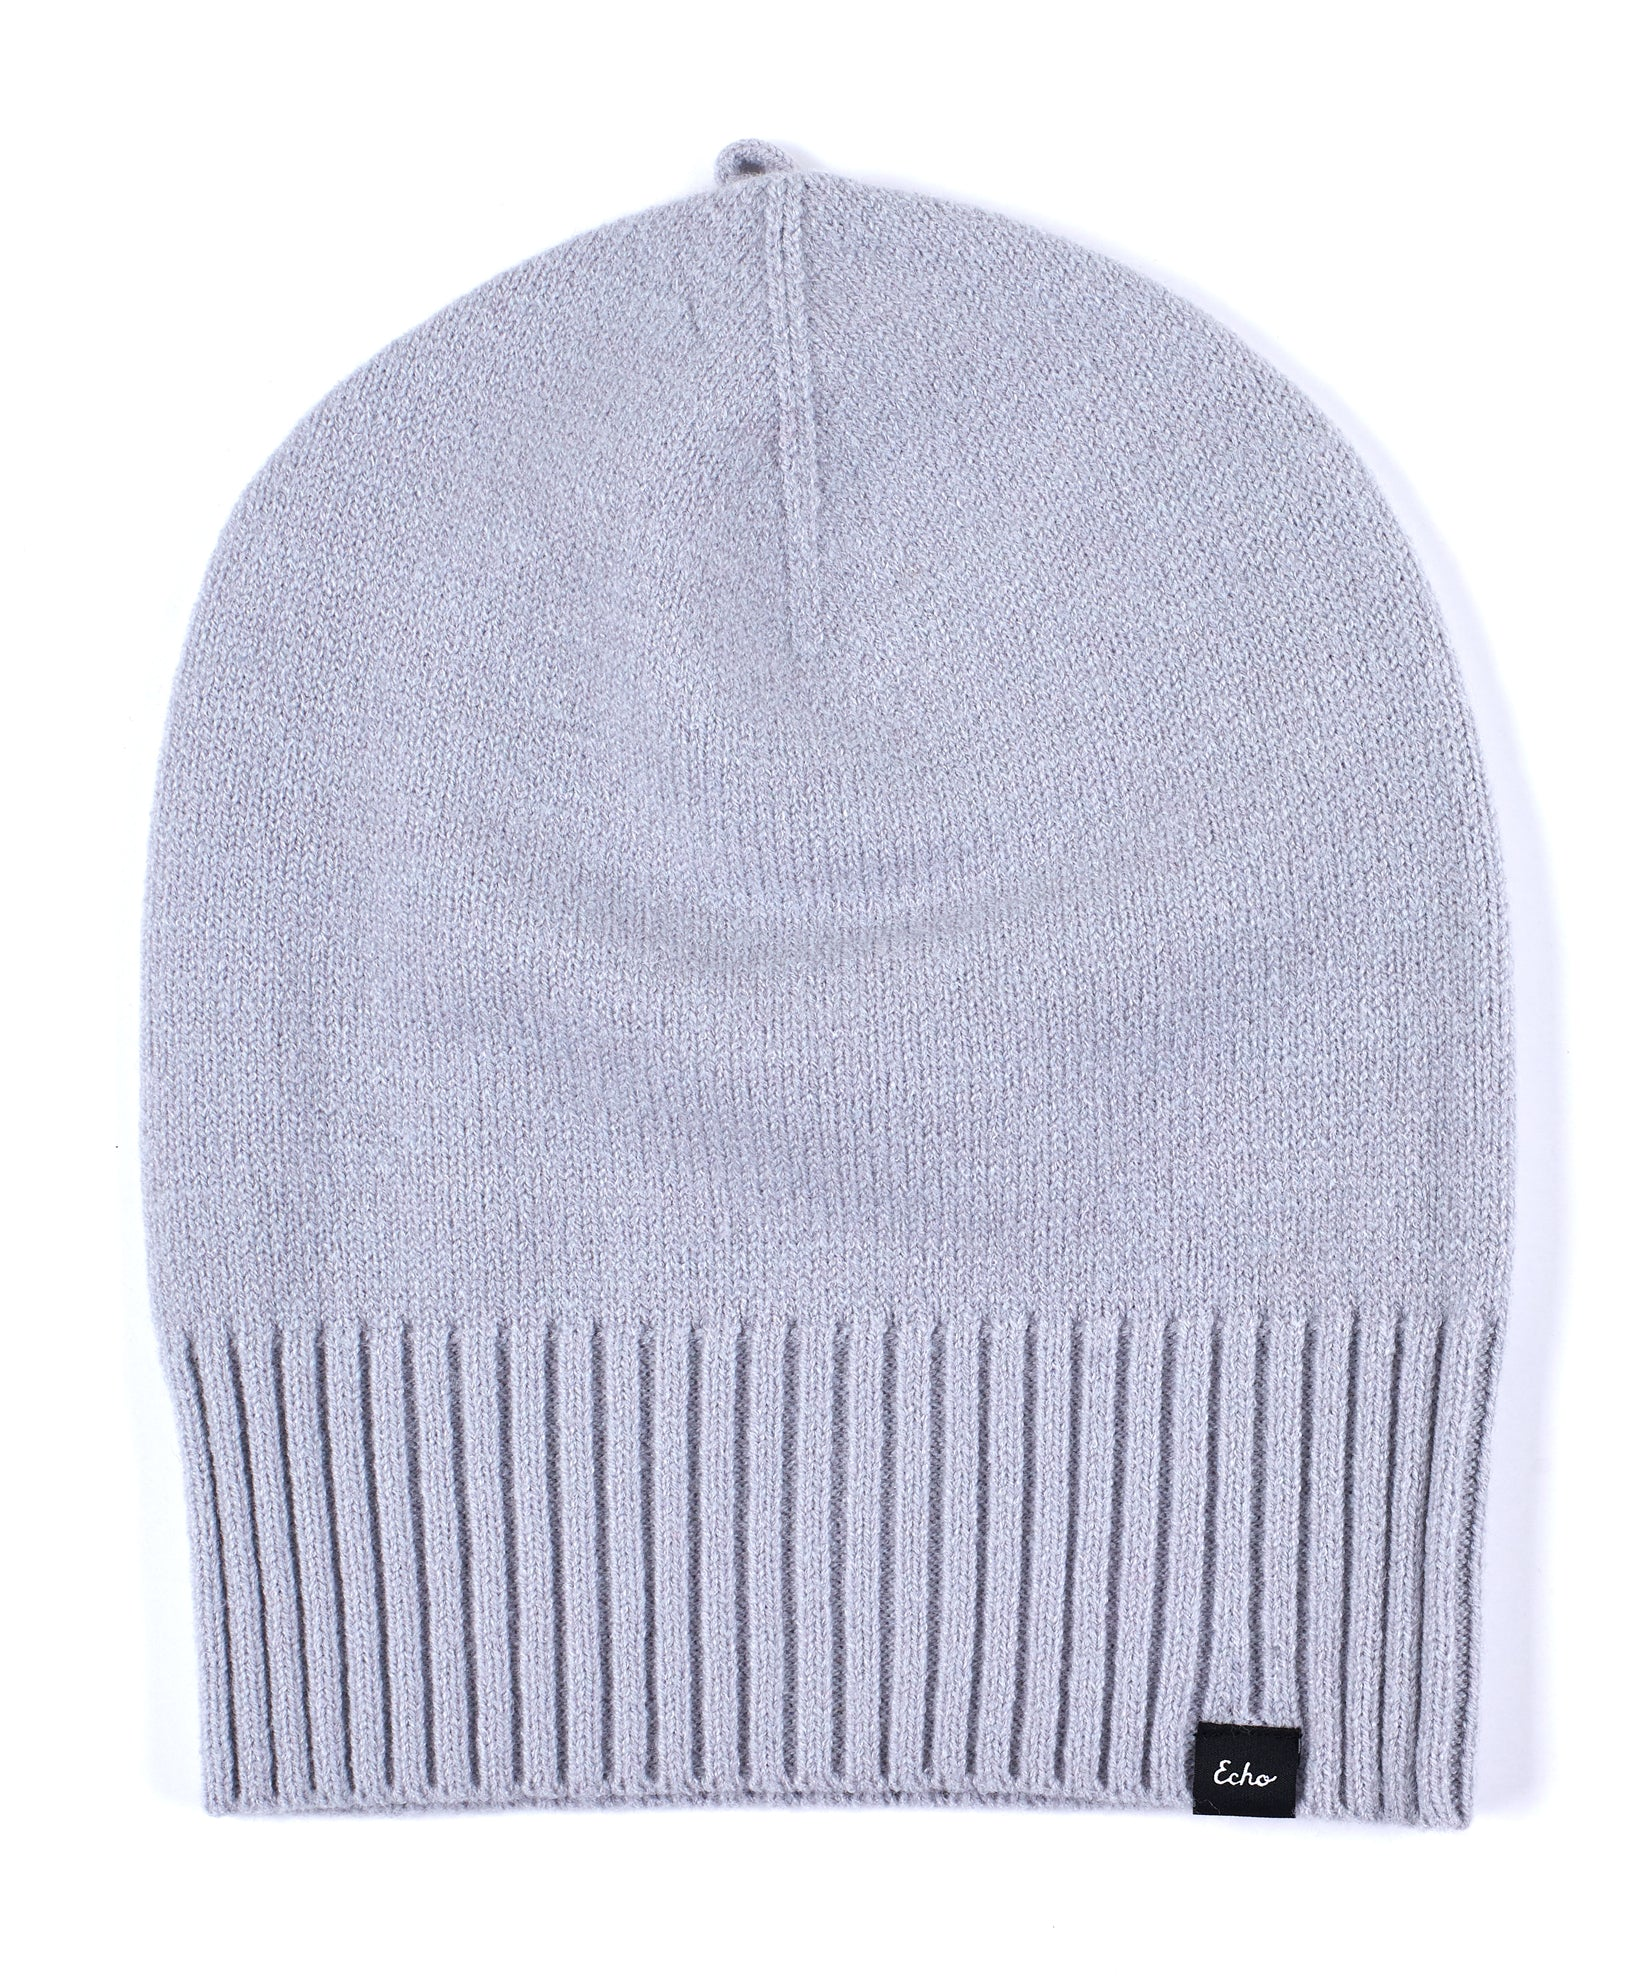 Echo Silver - Active Stretch Slouchy Beanie